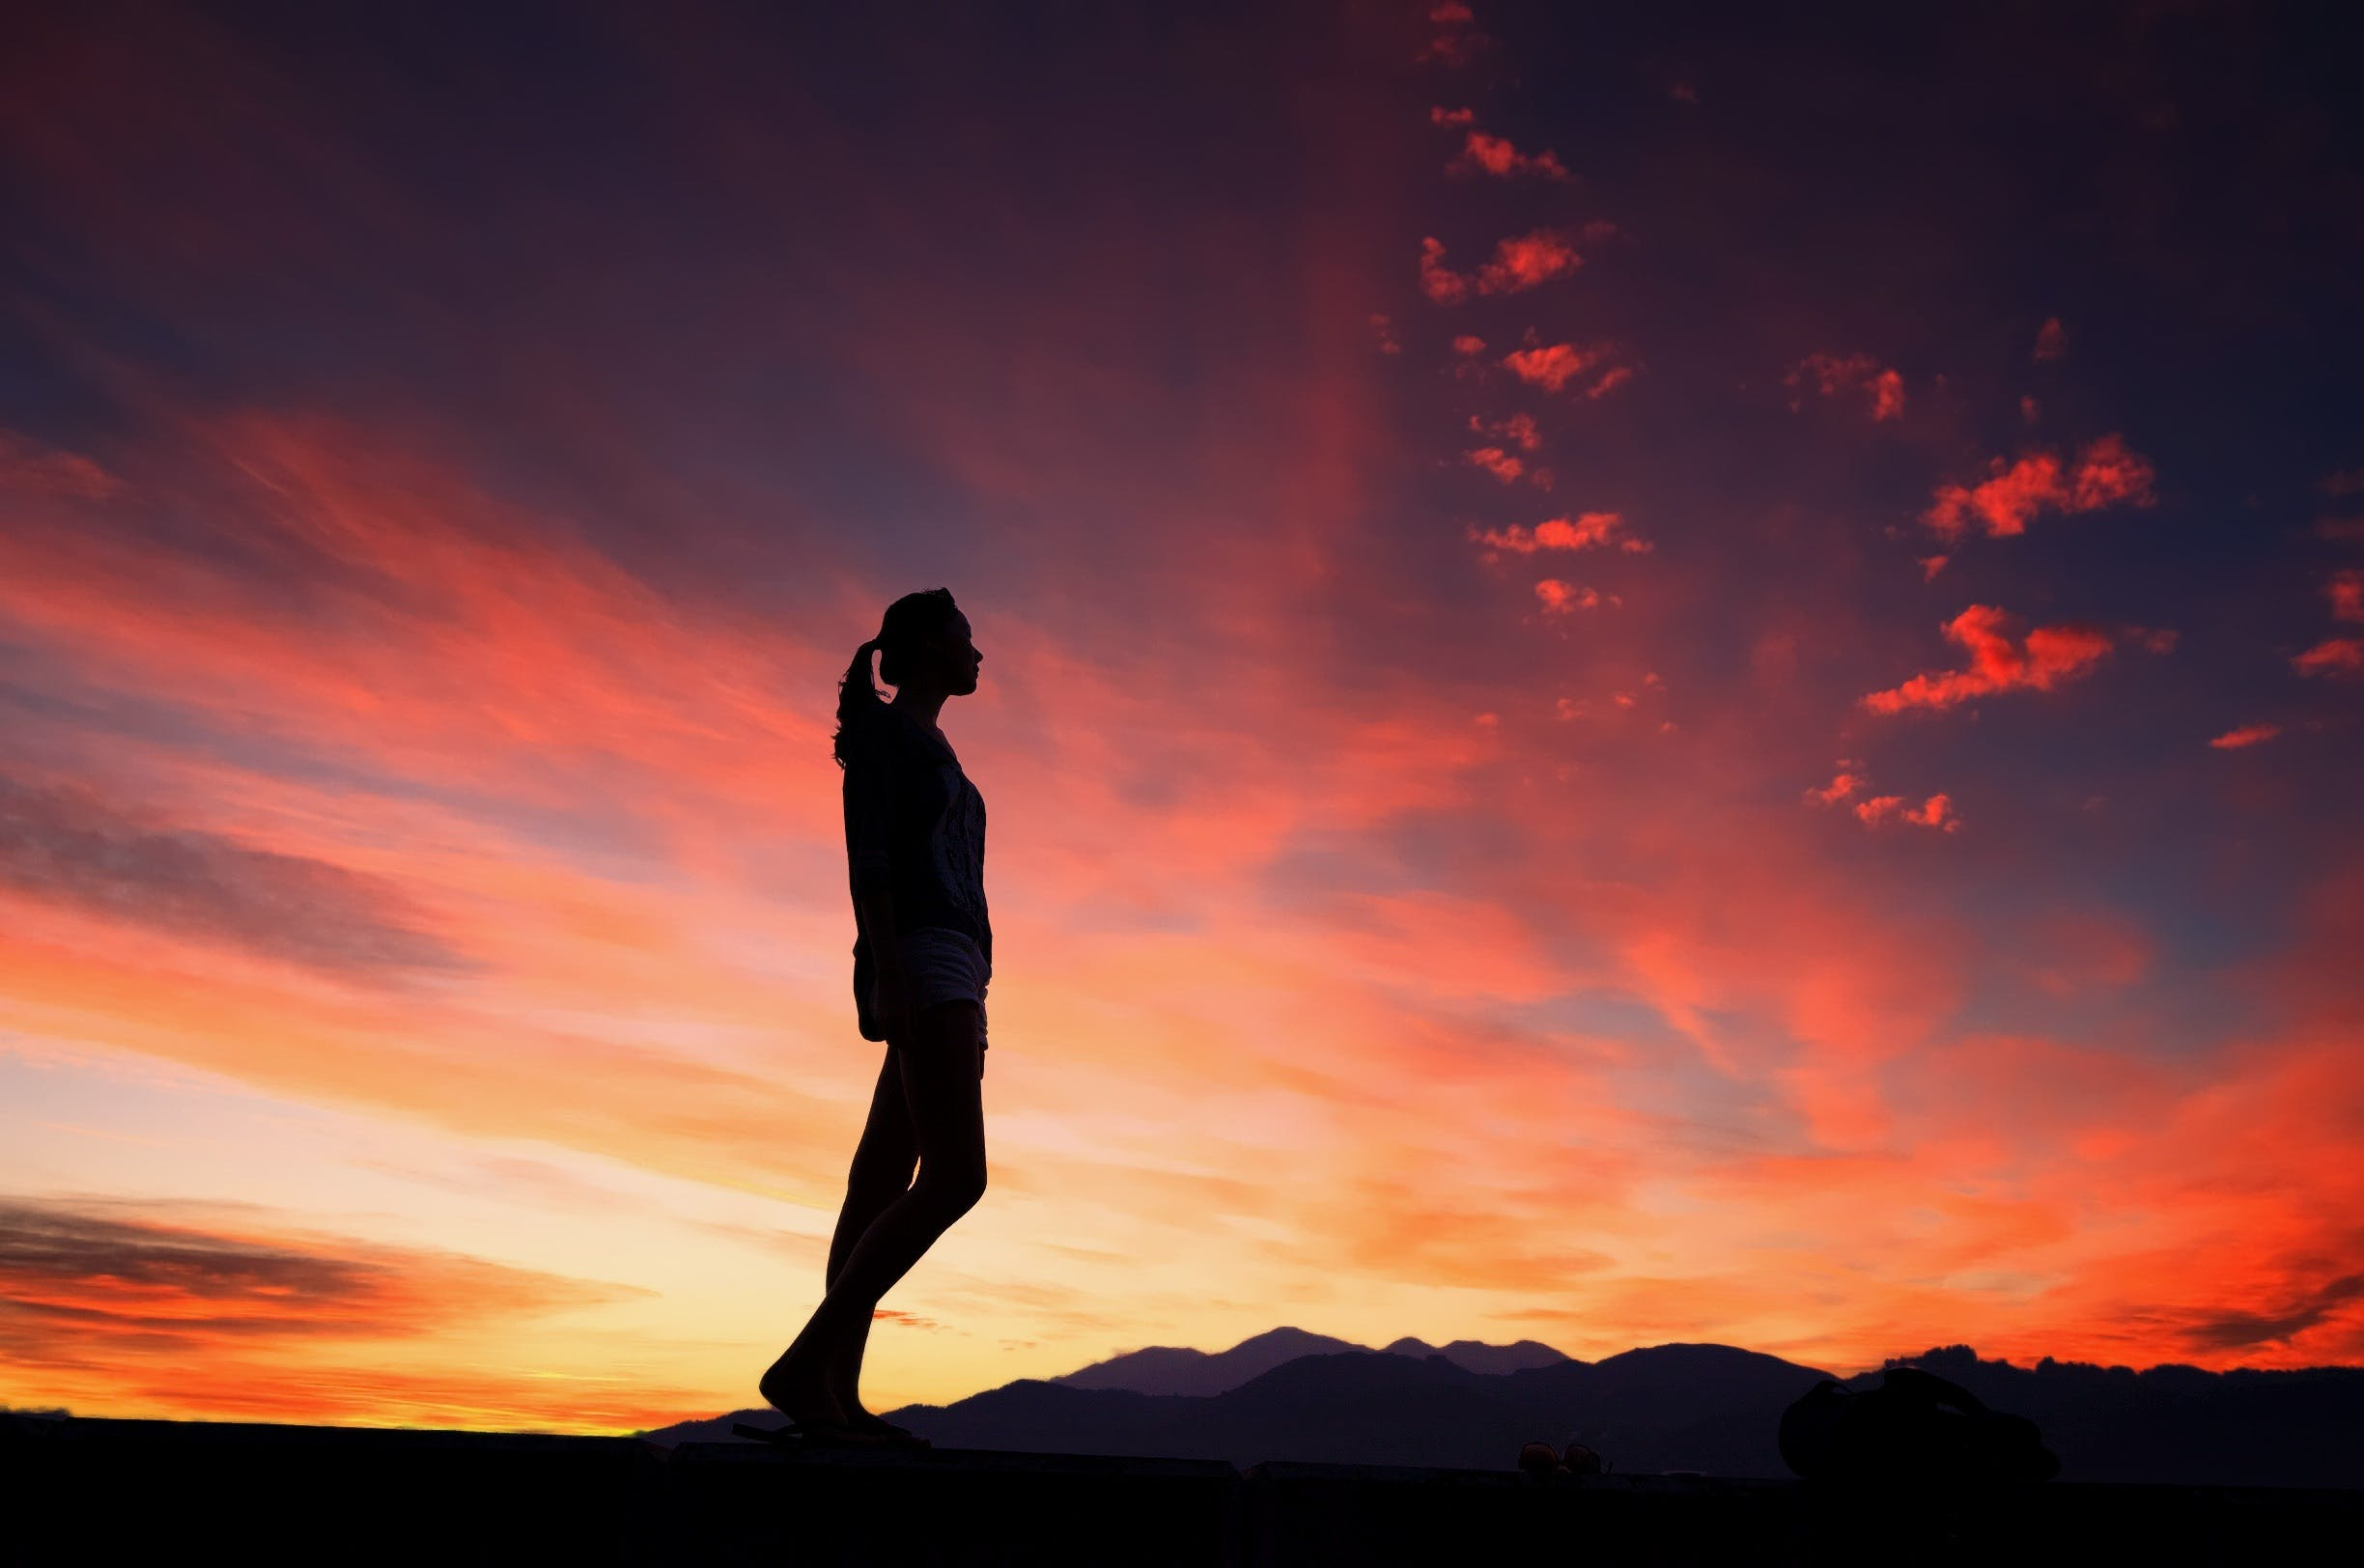 Silhouette of Woman during Orange Sunset